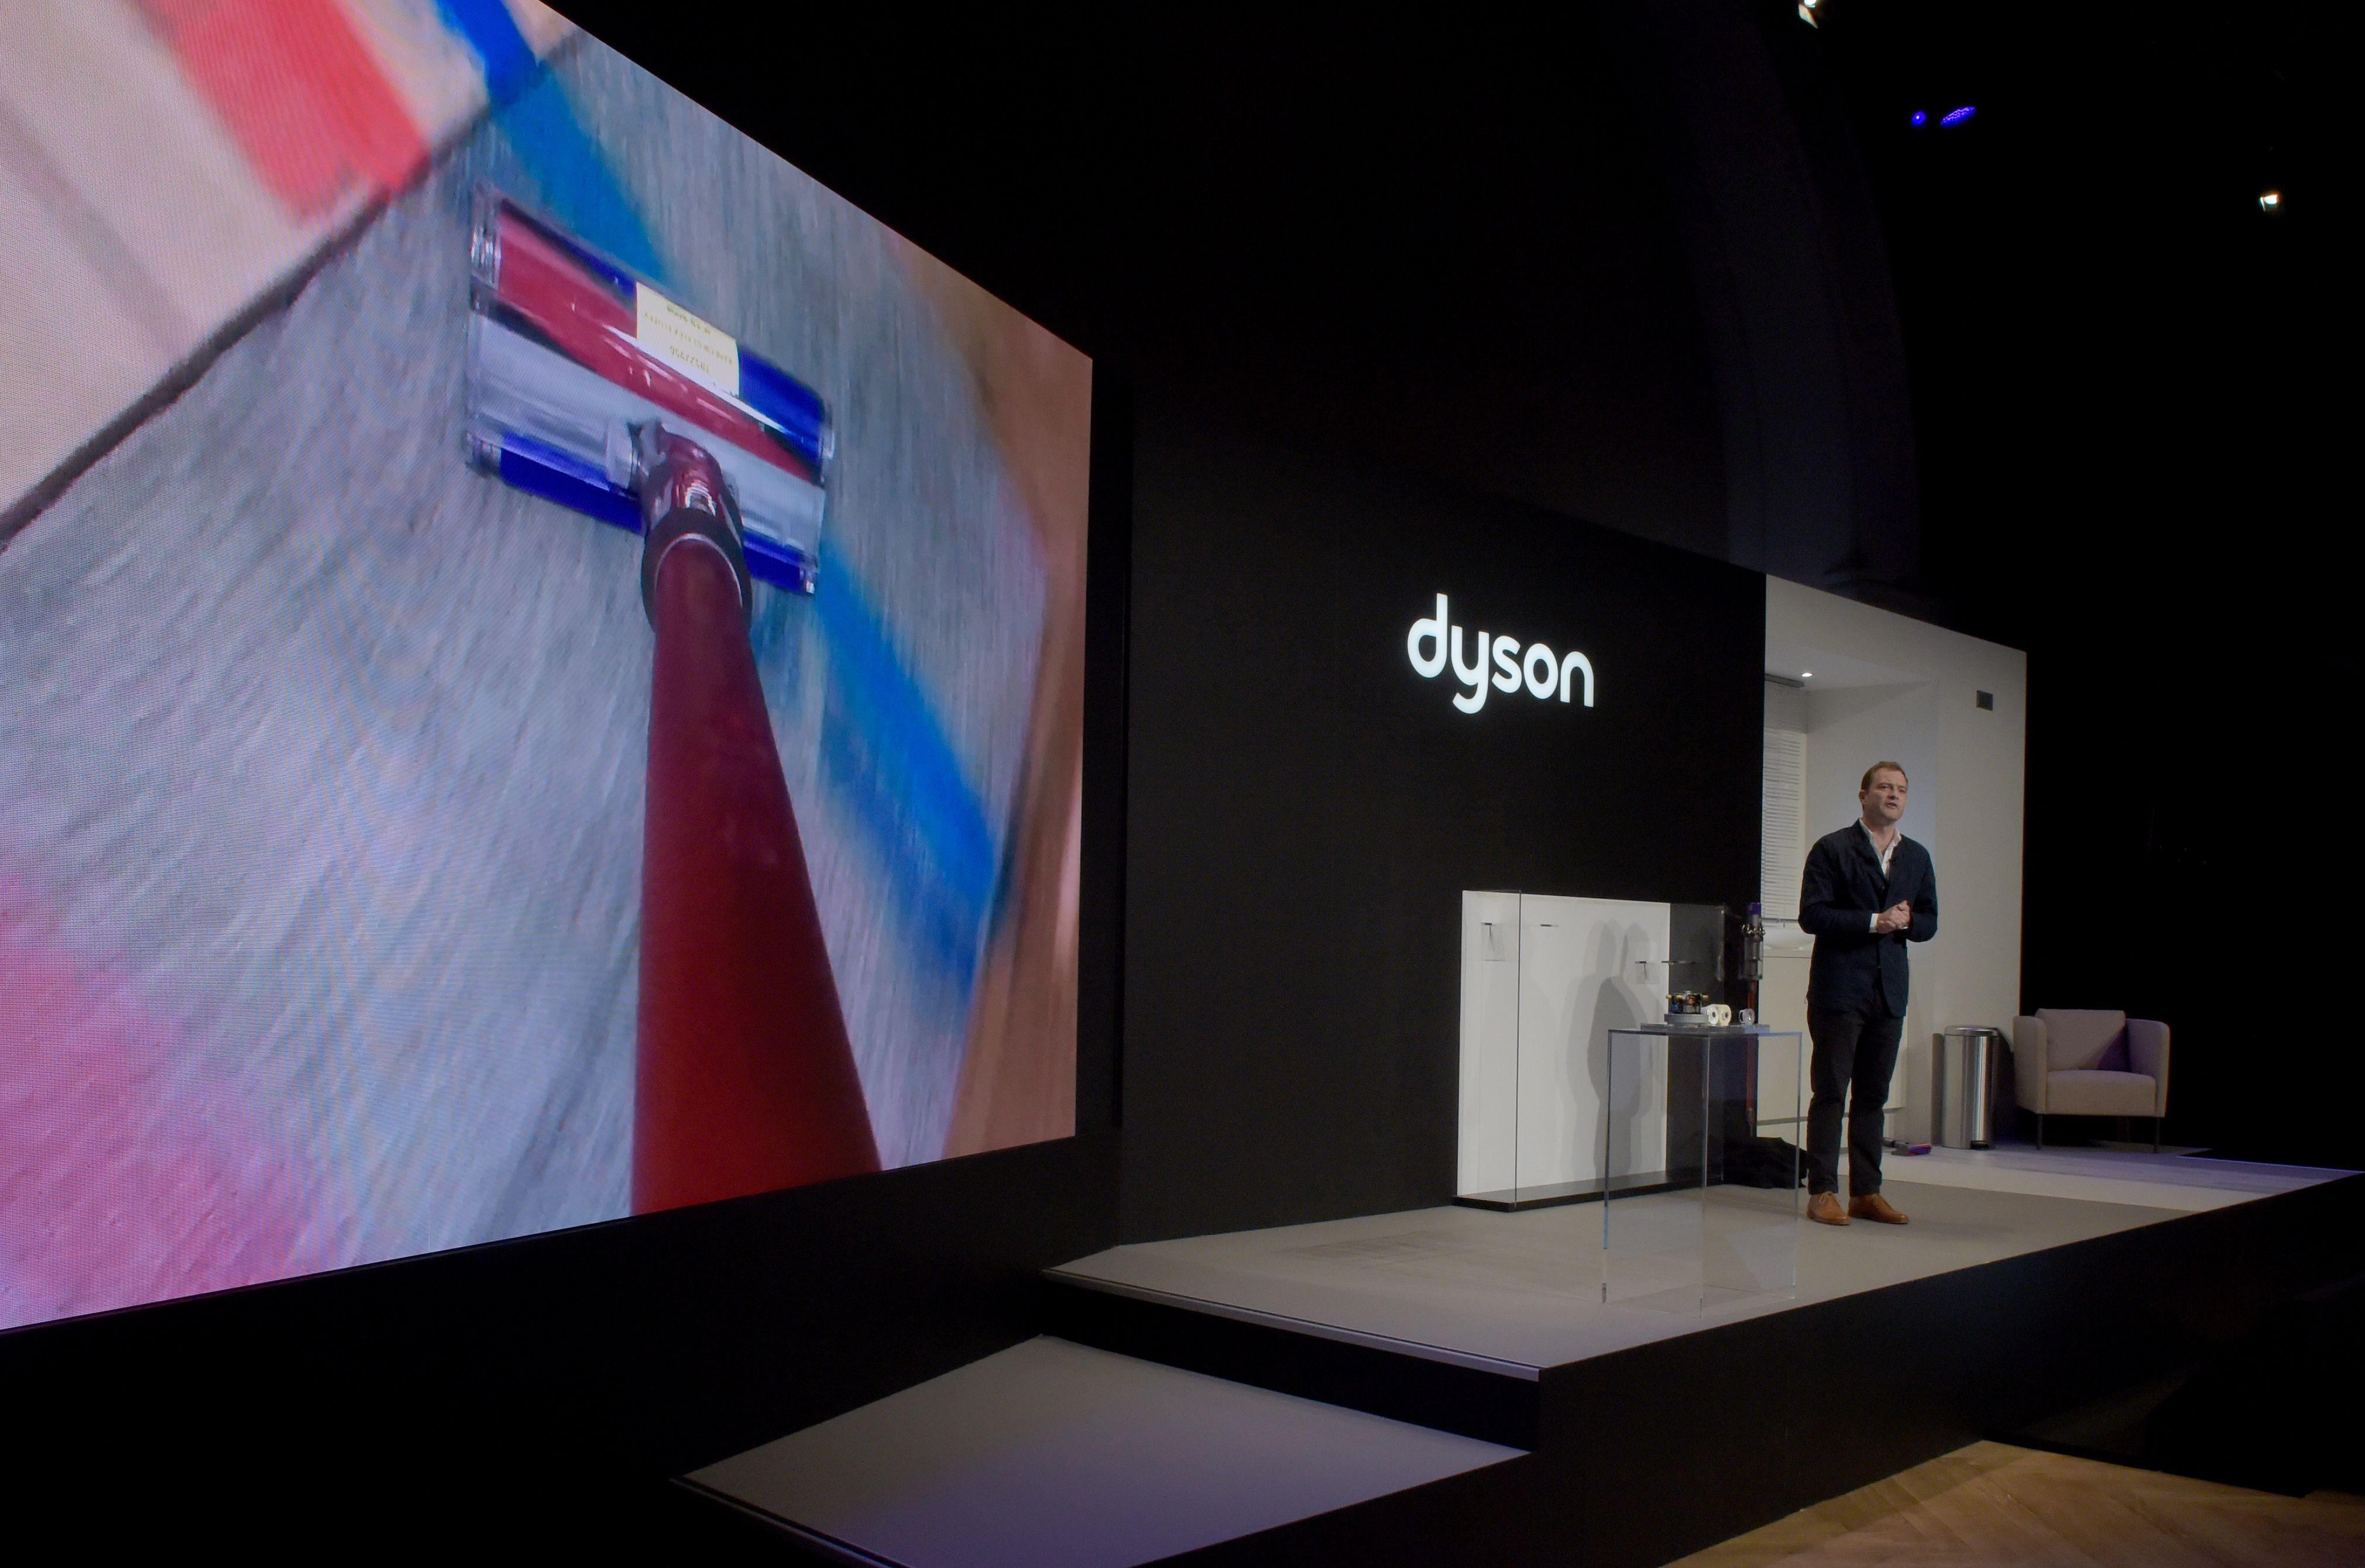 Dyson plans to add more than 2,000 jobs in Southeast Asia